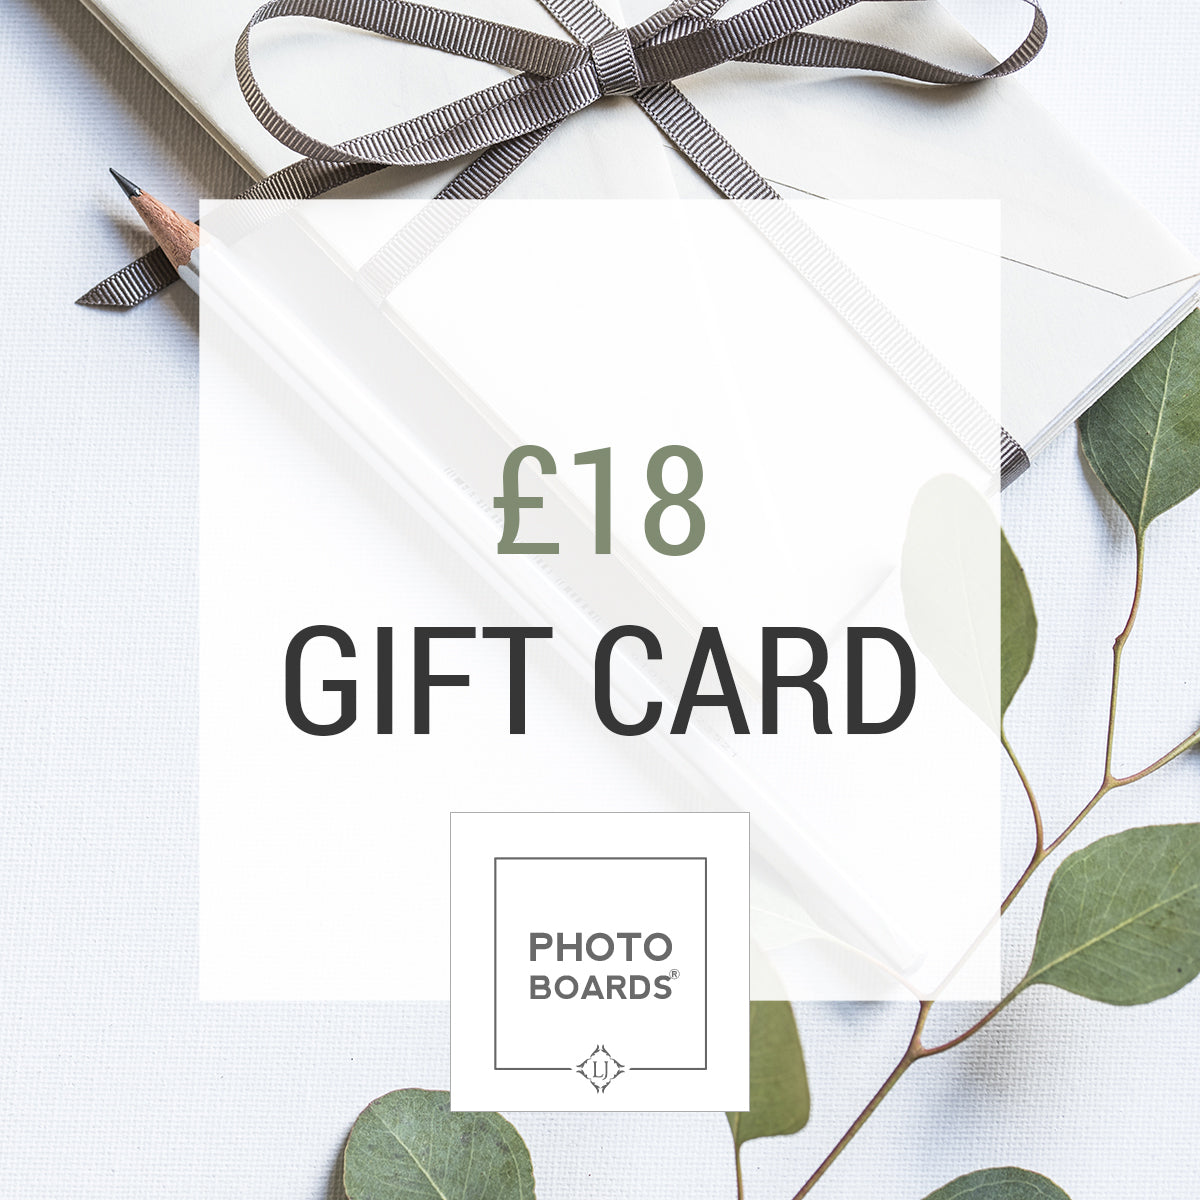 £18 Gift Card